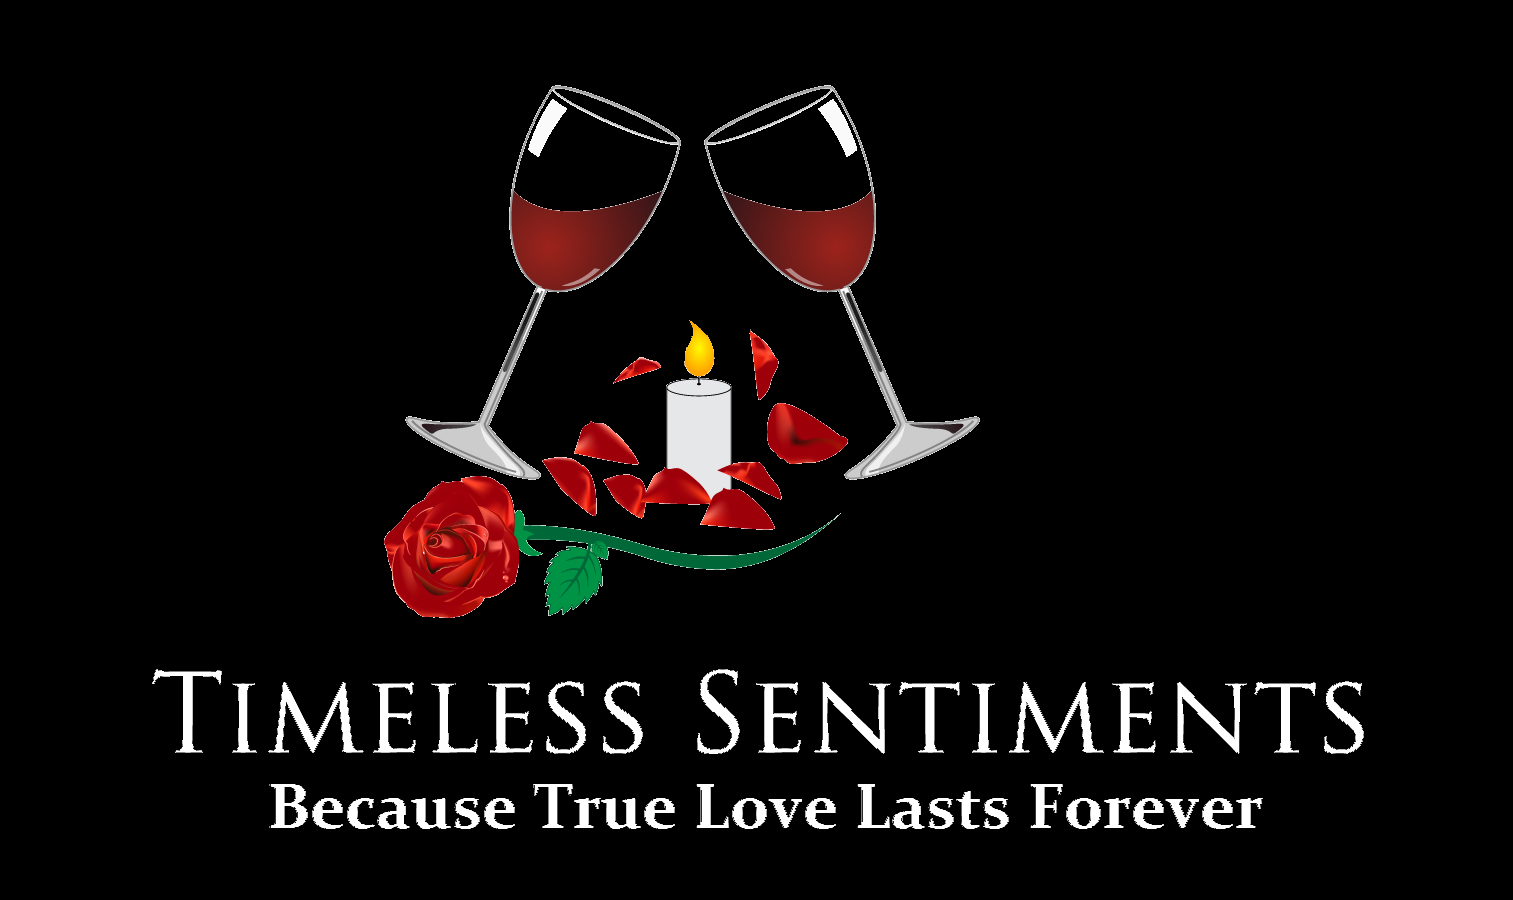 Timeless Sentiments logo